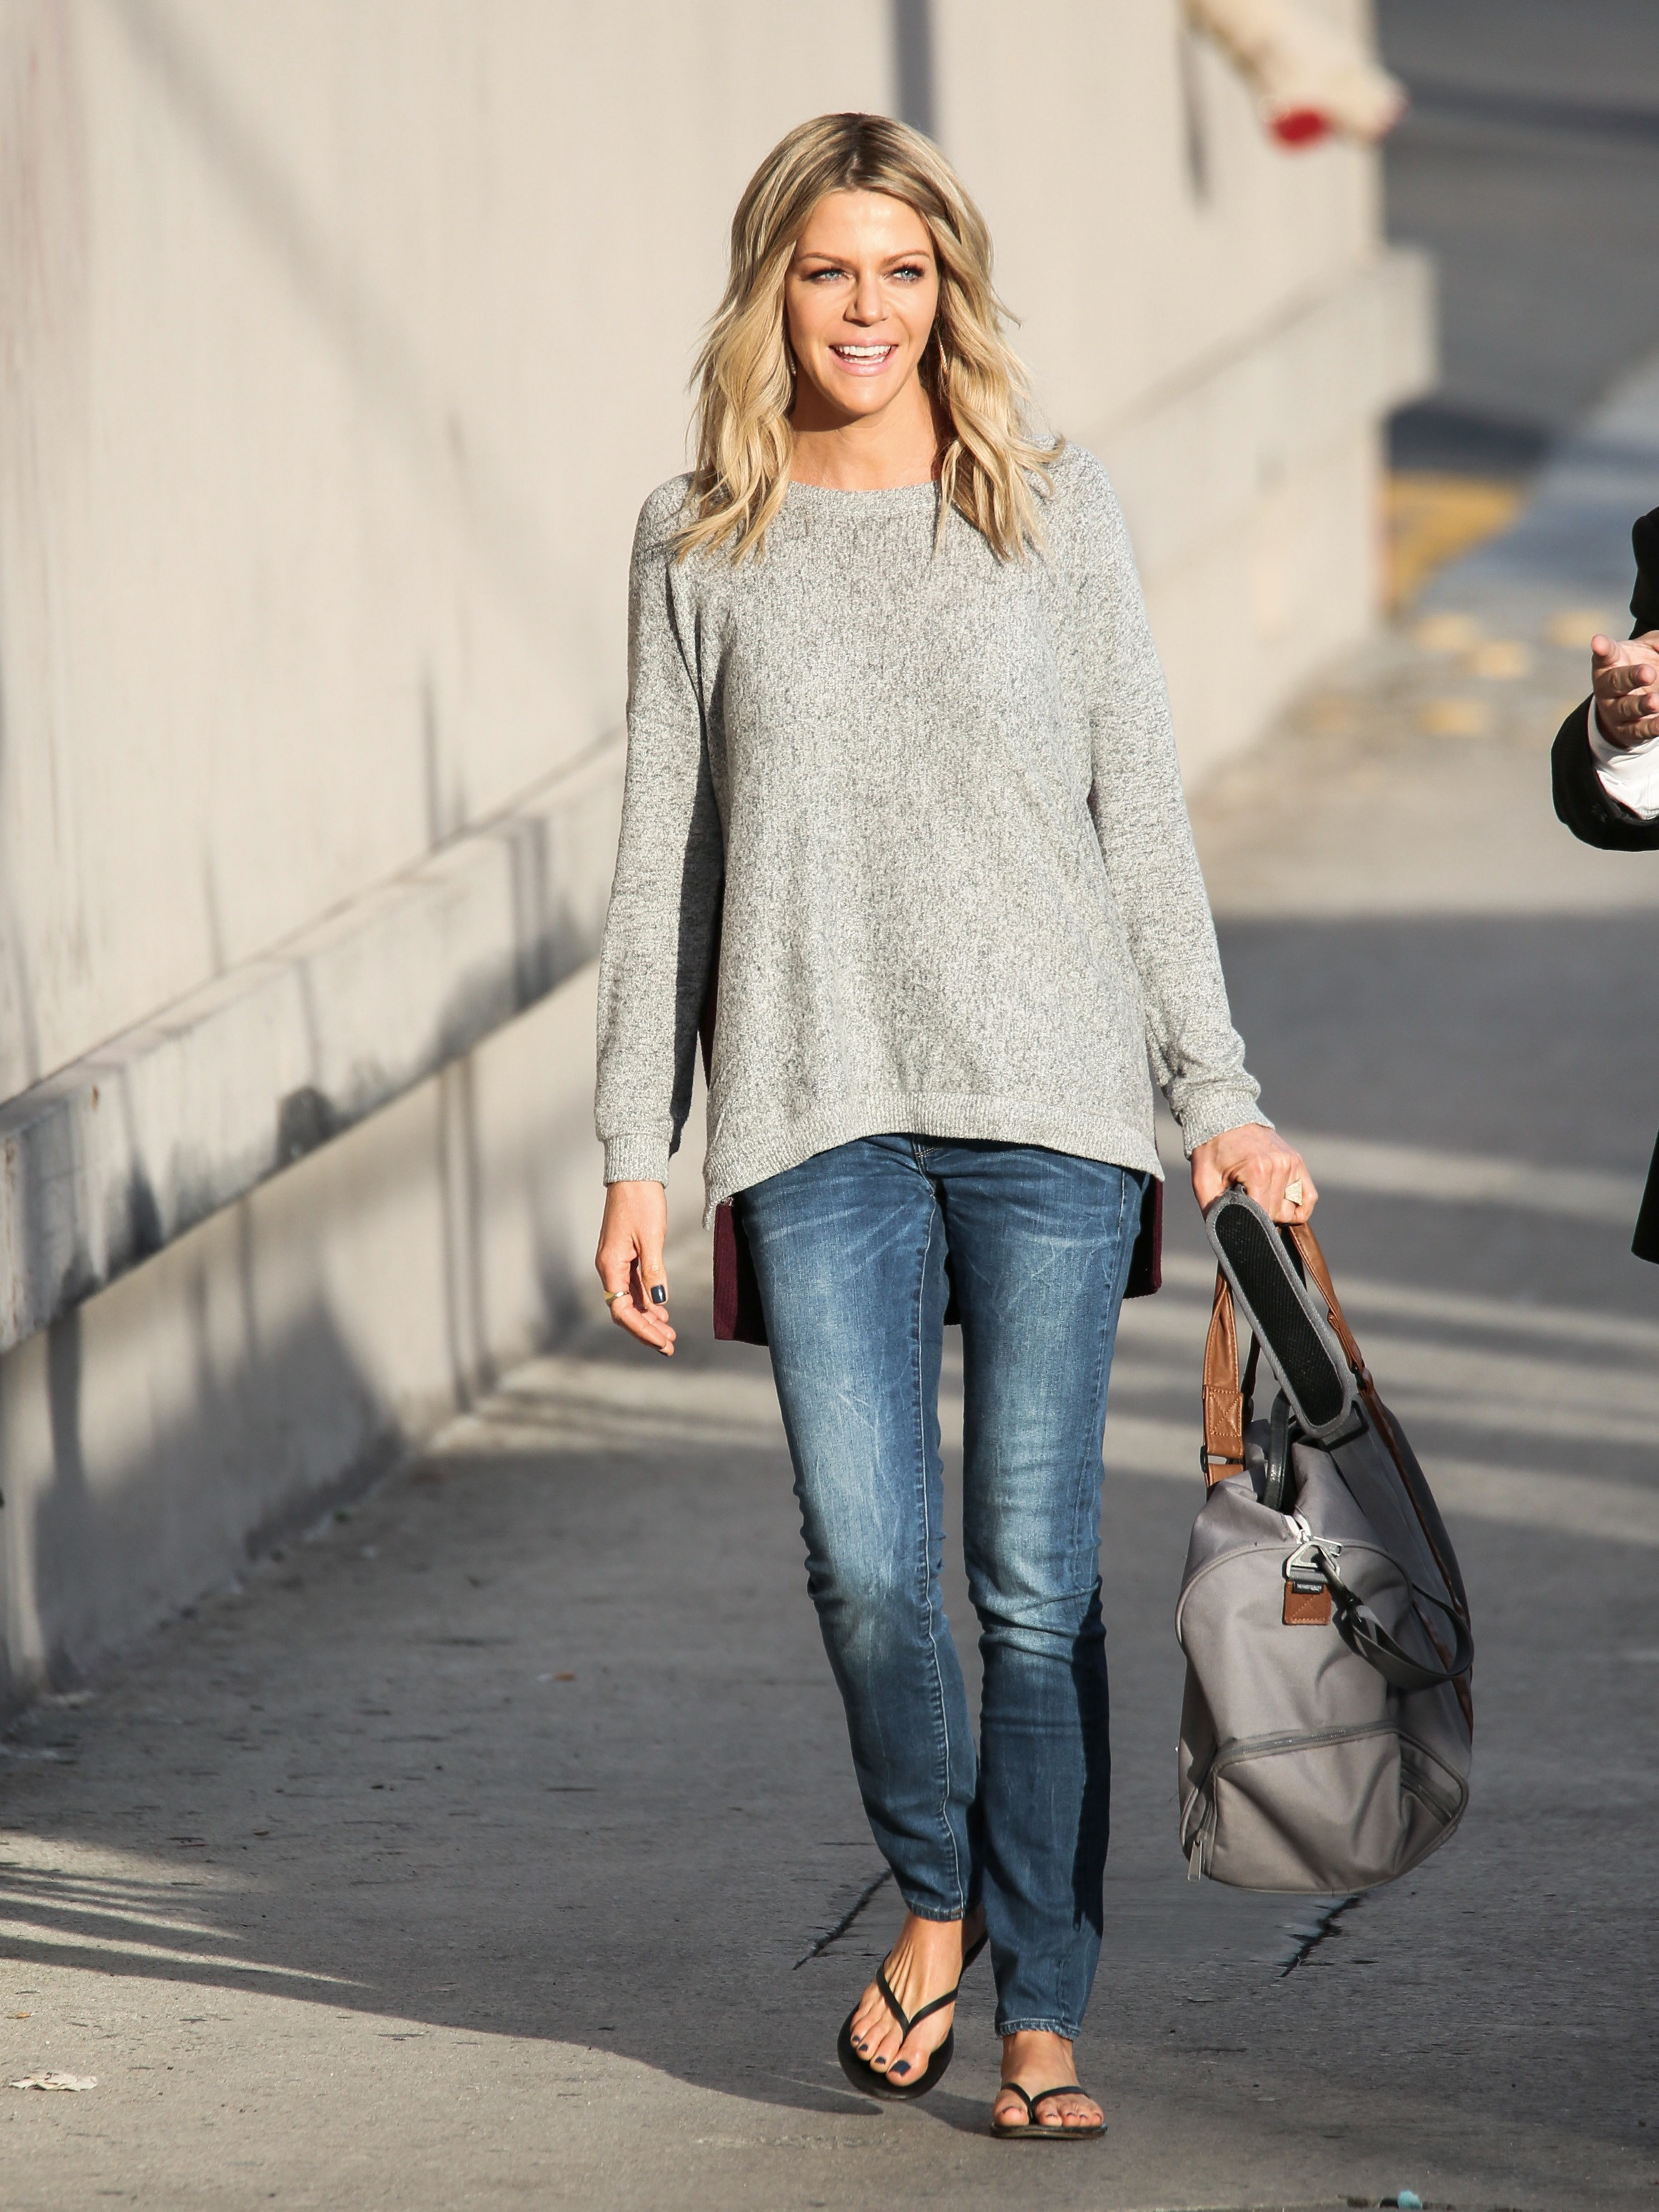 Kaitlin Olson naked (76 images) Feet, YouTube, braless